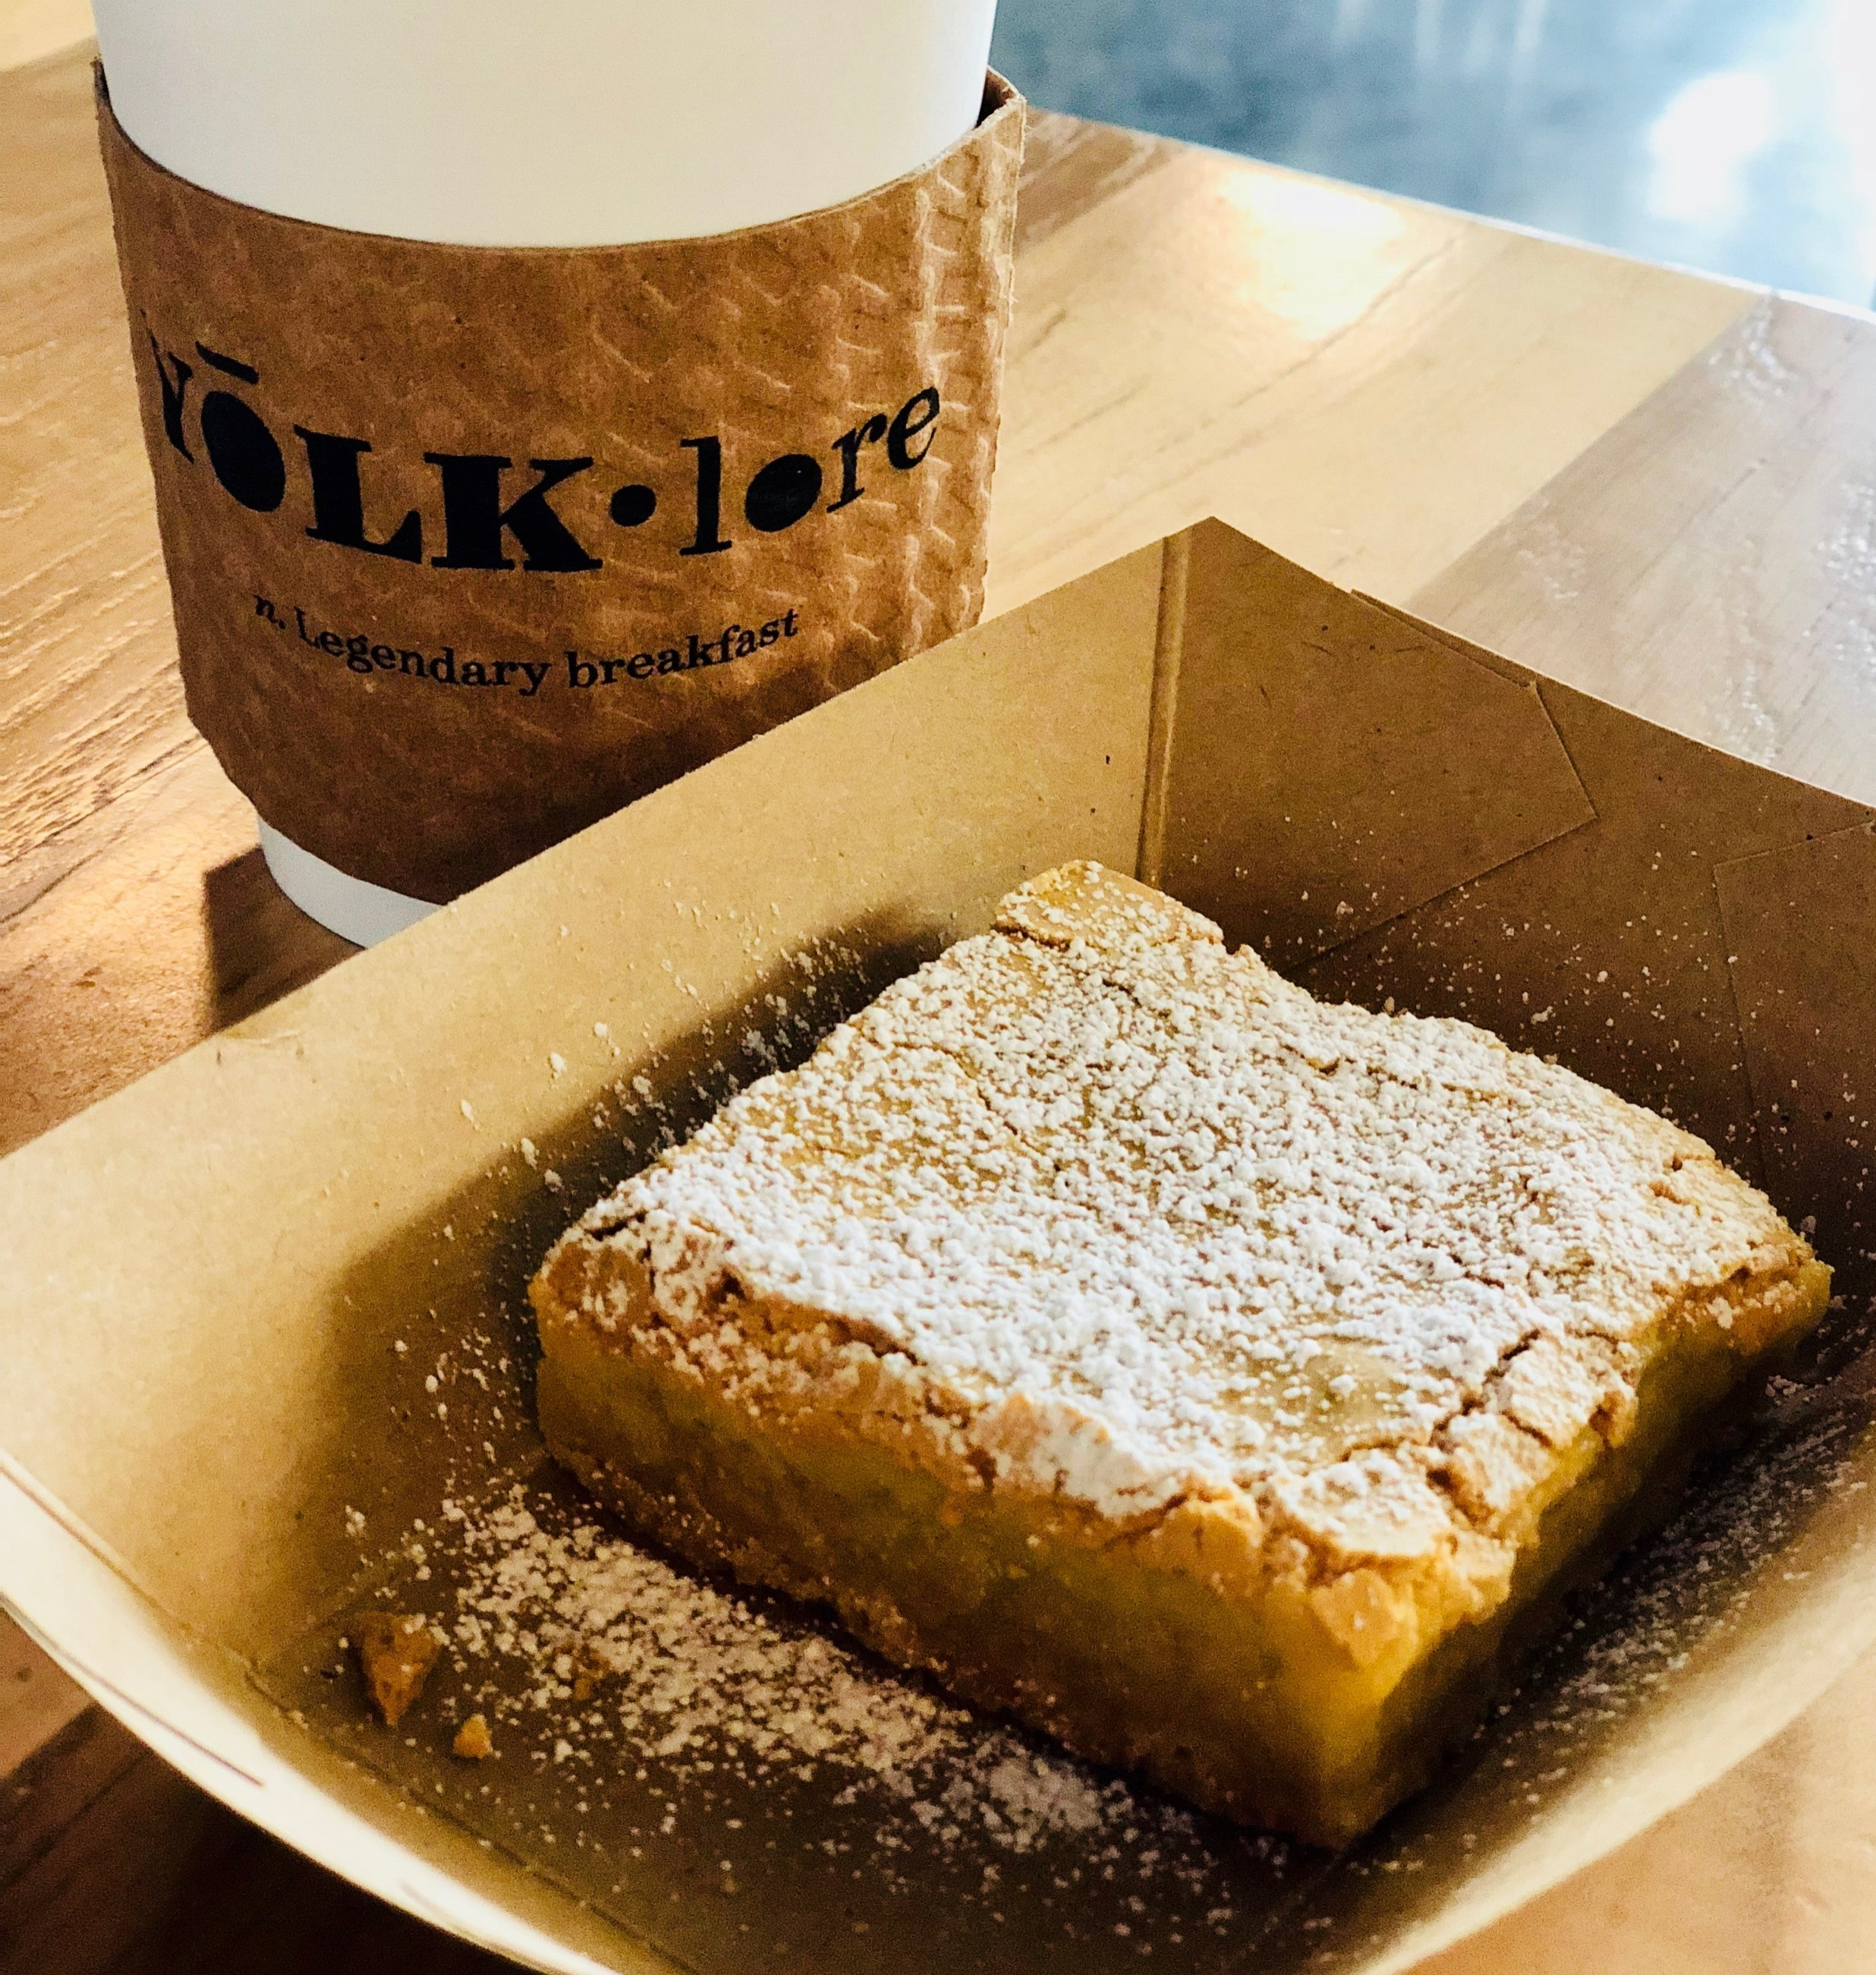 Gooey Butter Cake is a classic St. Louis find and quite possibly the best version I've ever had - it has the perfect crust on top.